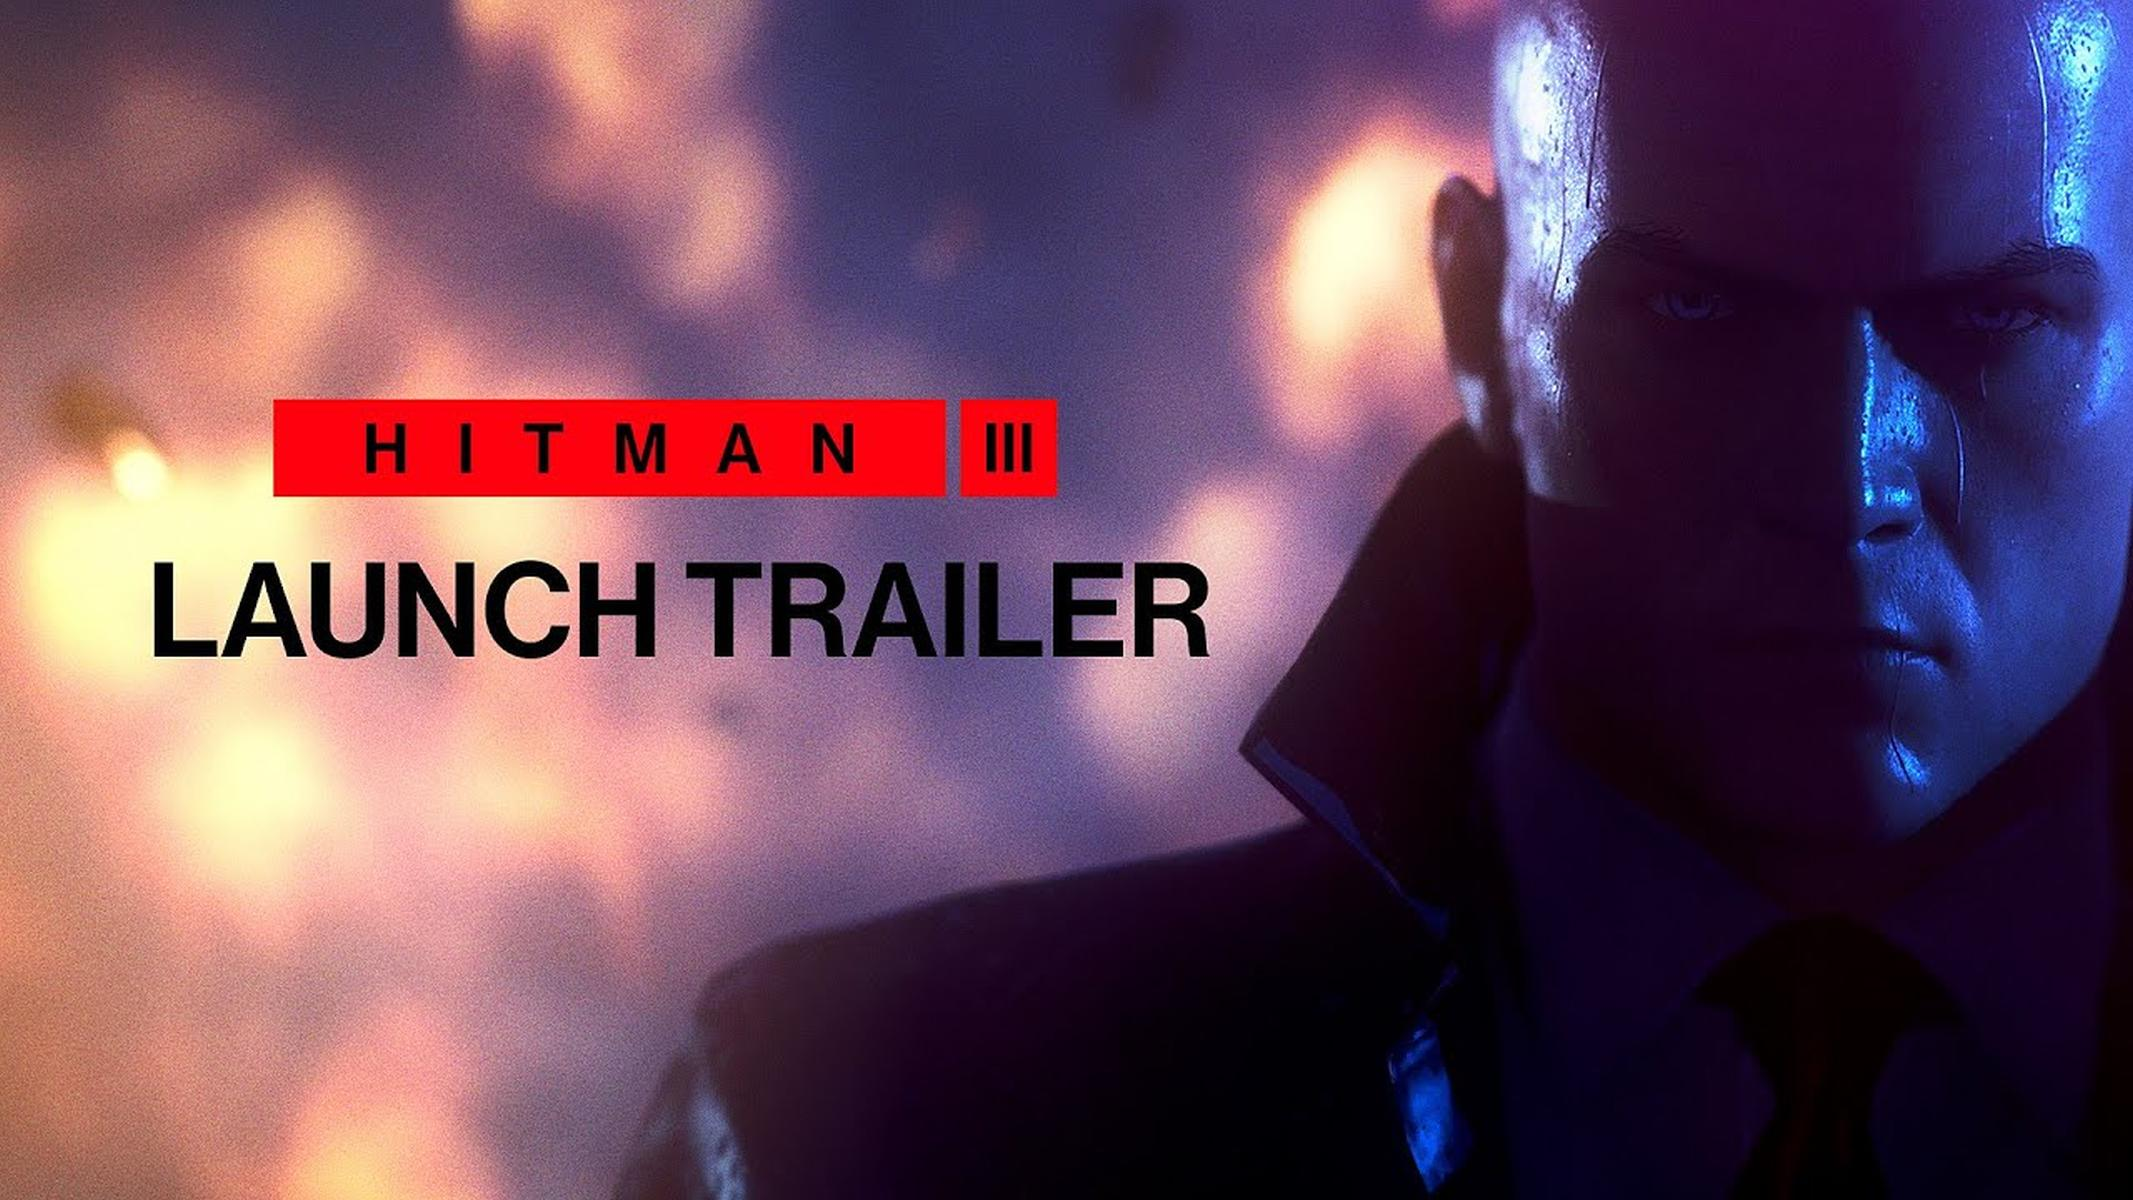 Hitman III Launch Trailer